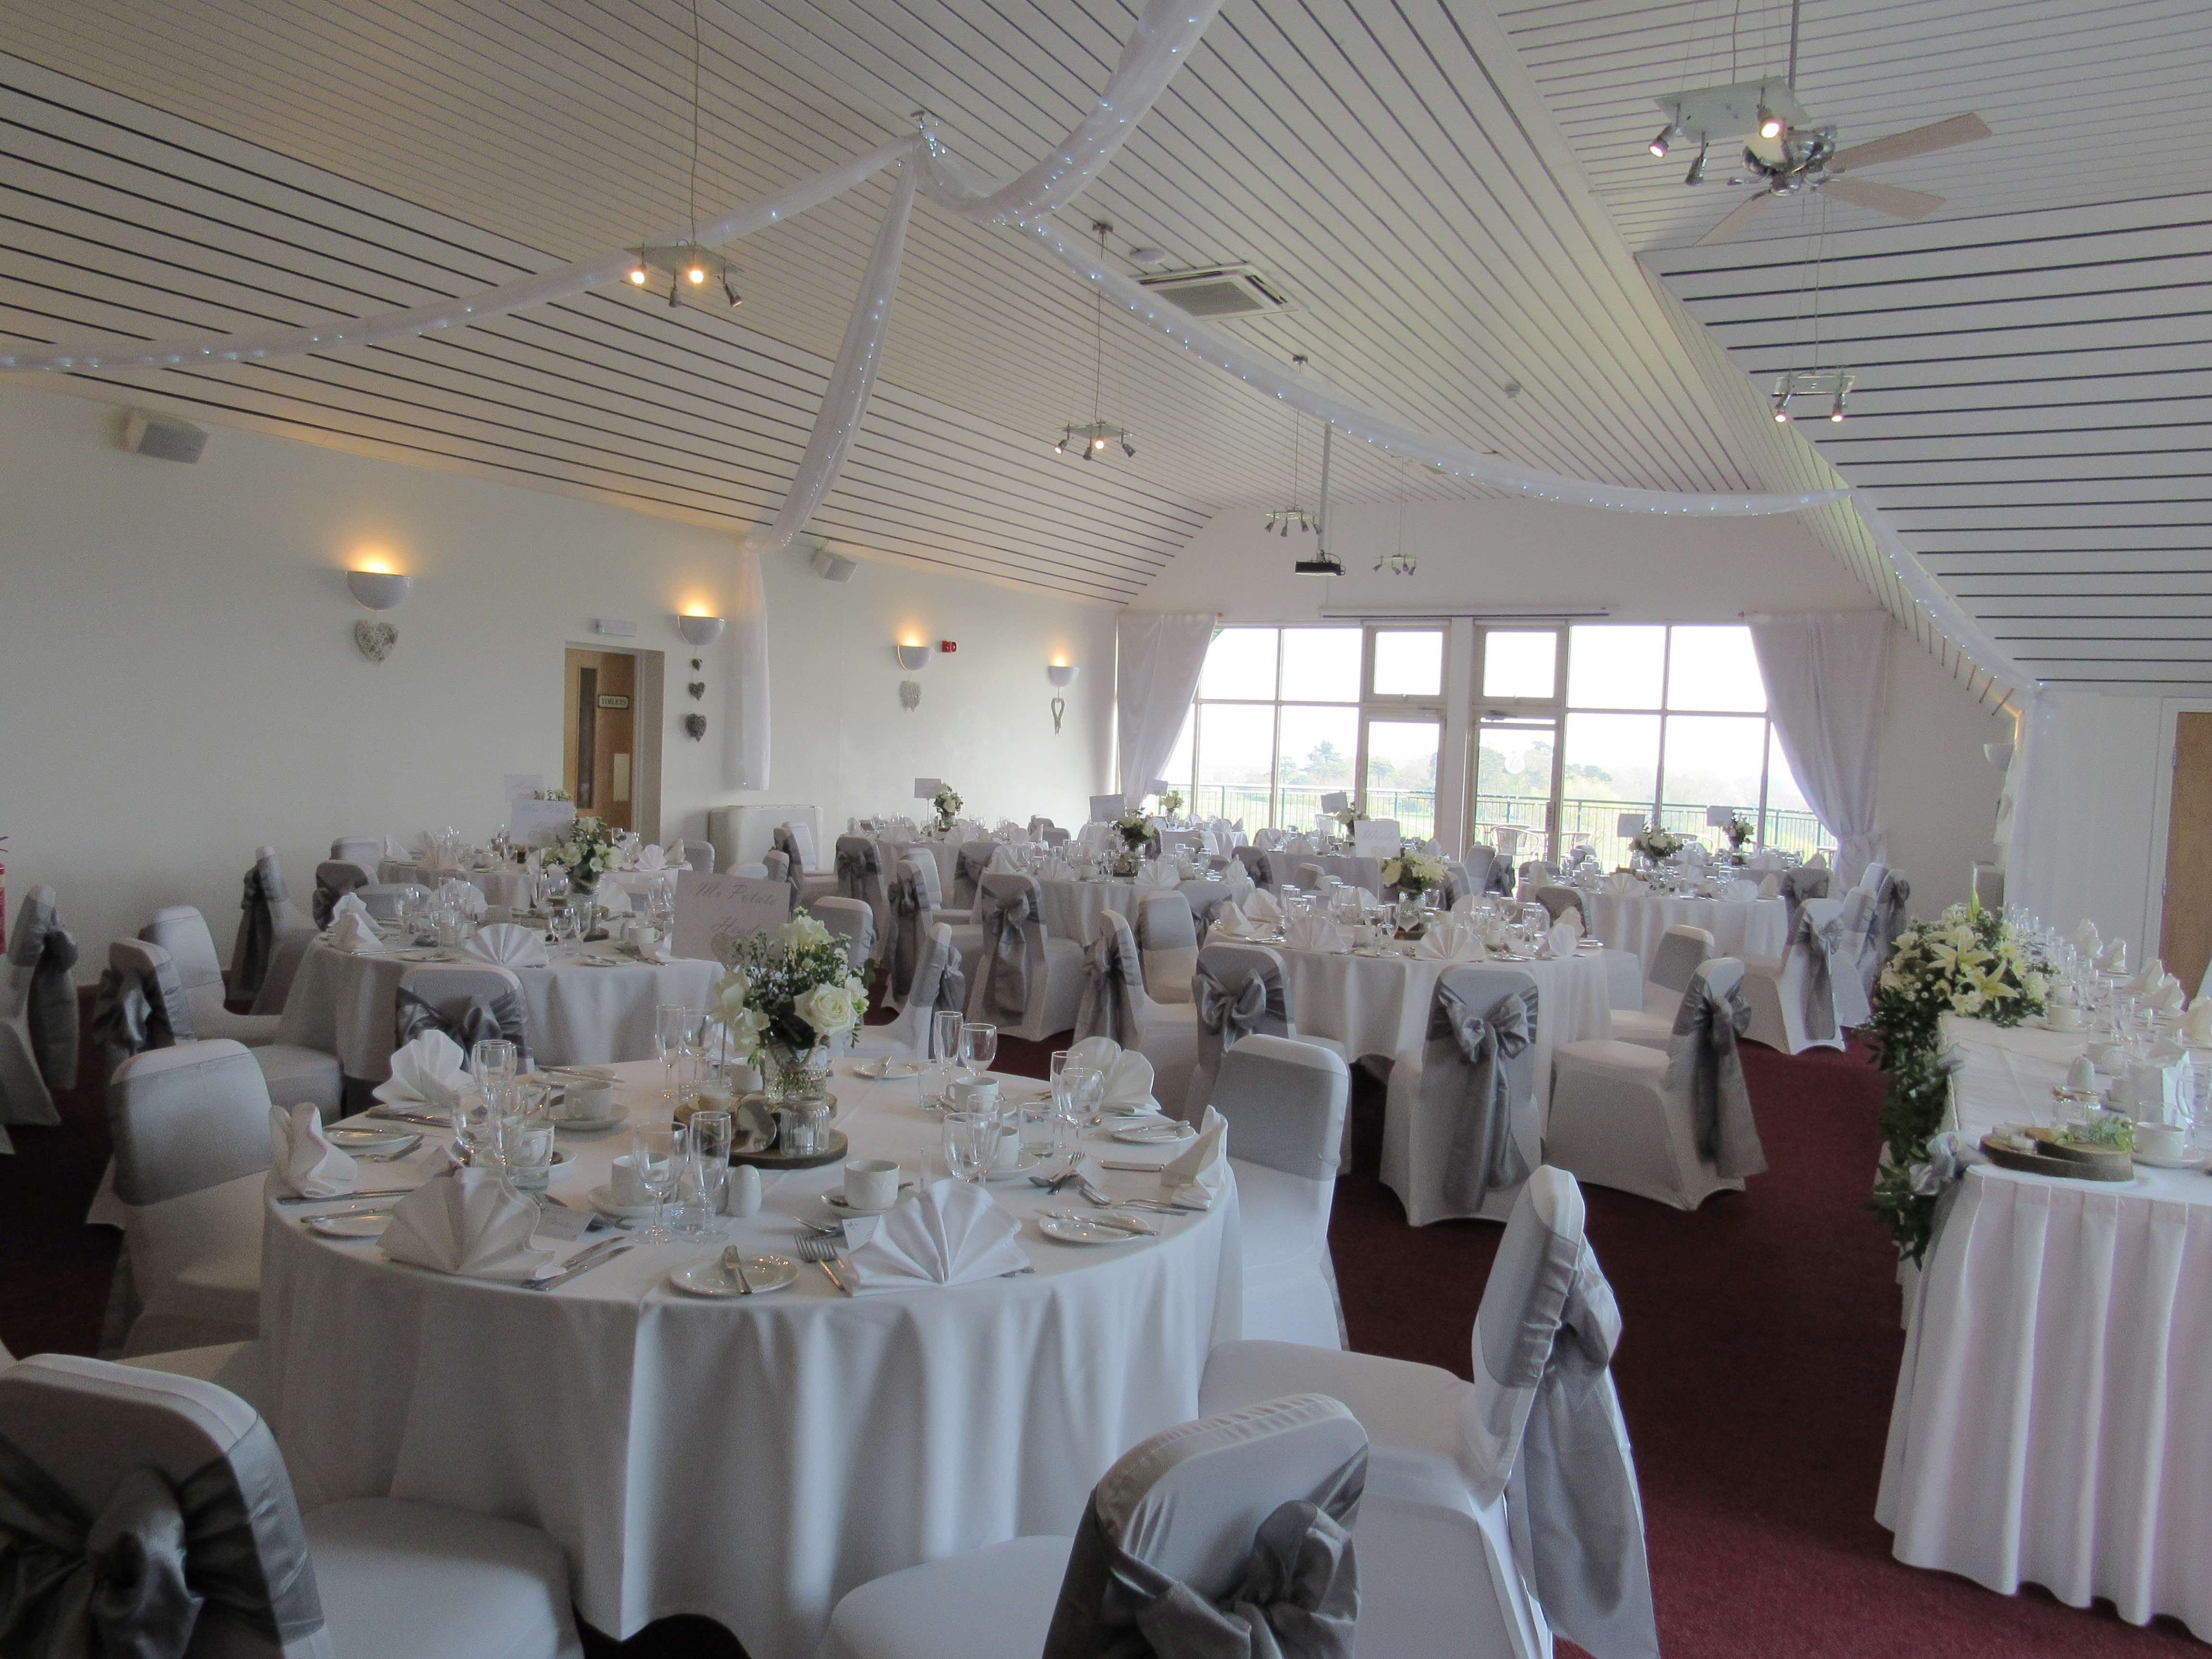 Our Deben Suite dressed for a wedding breakfast.